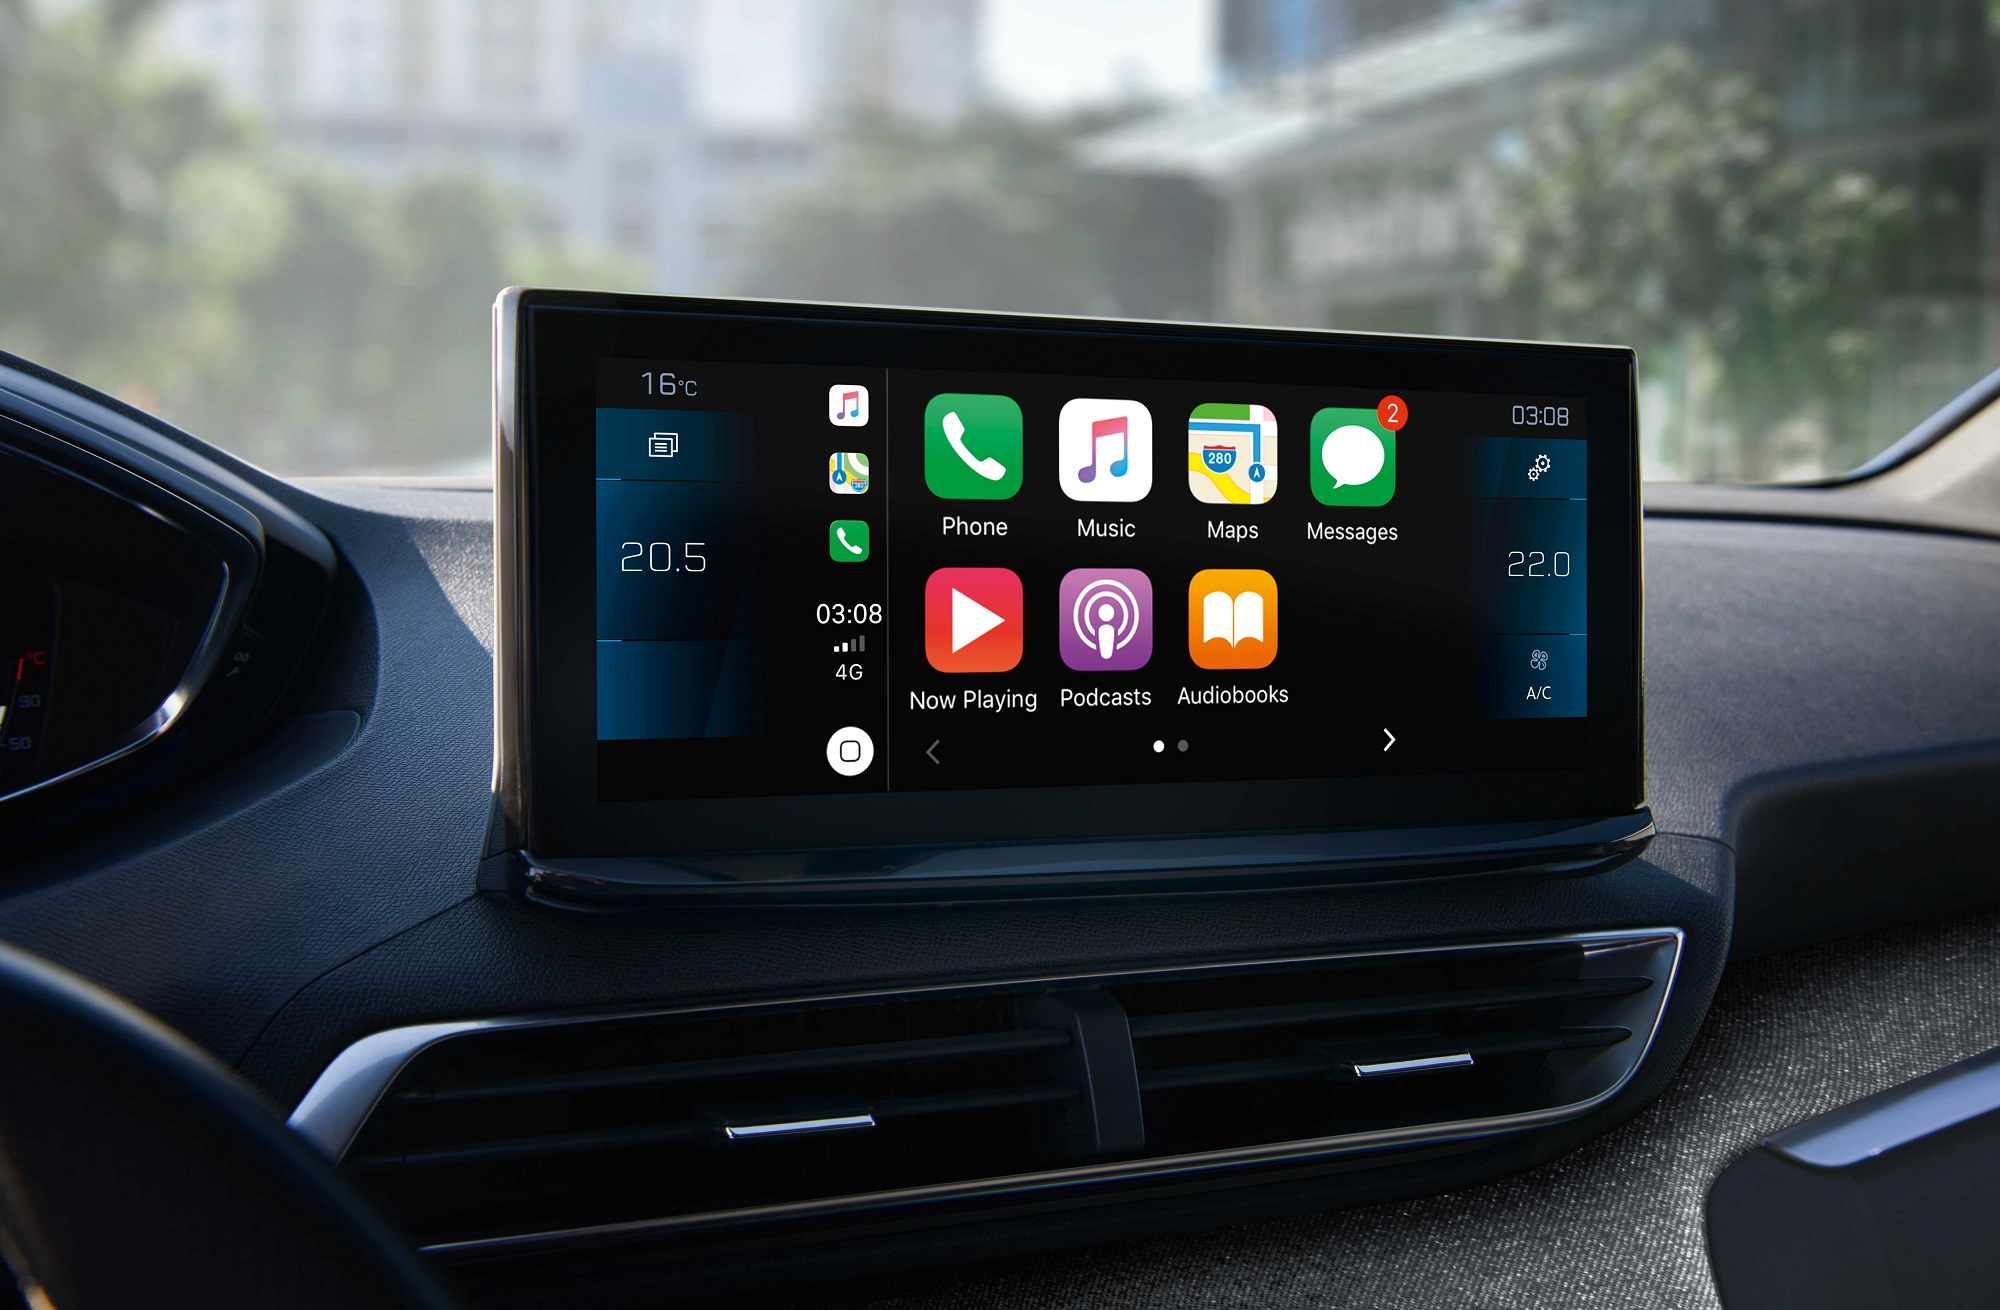 Peugeot 3008 10inch Touchscreen (overseas model shown).